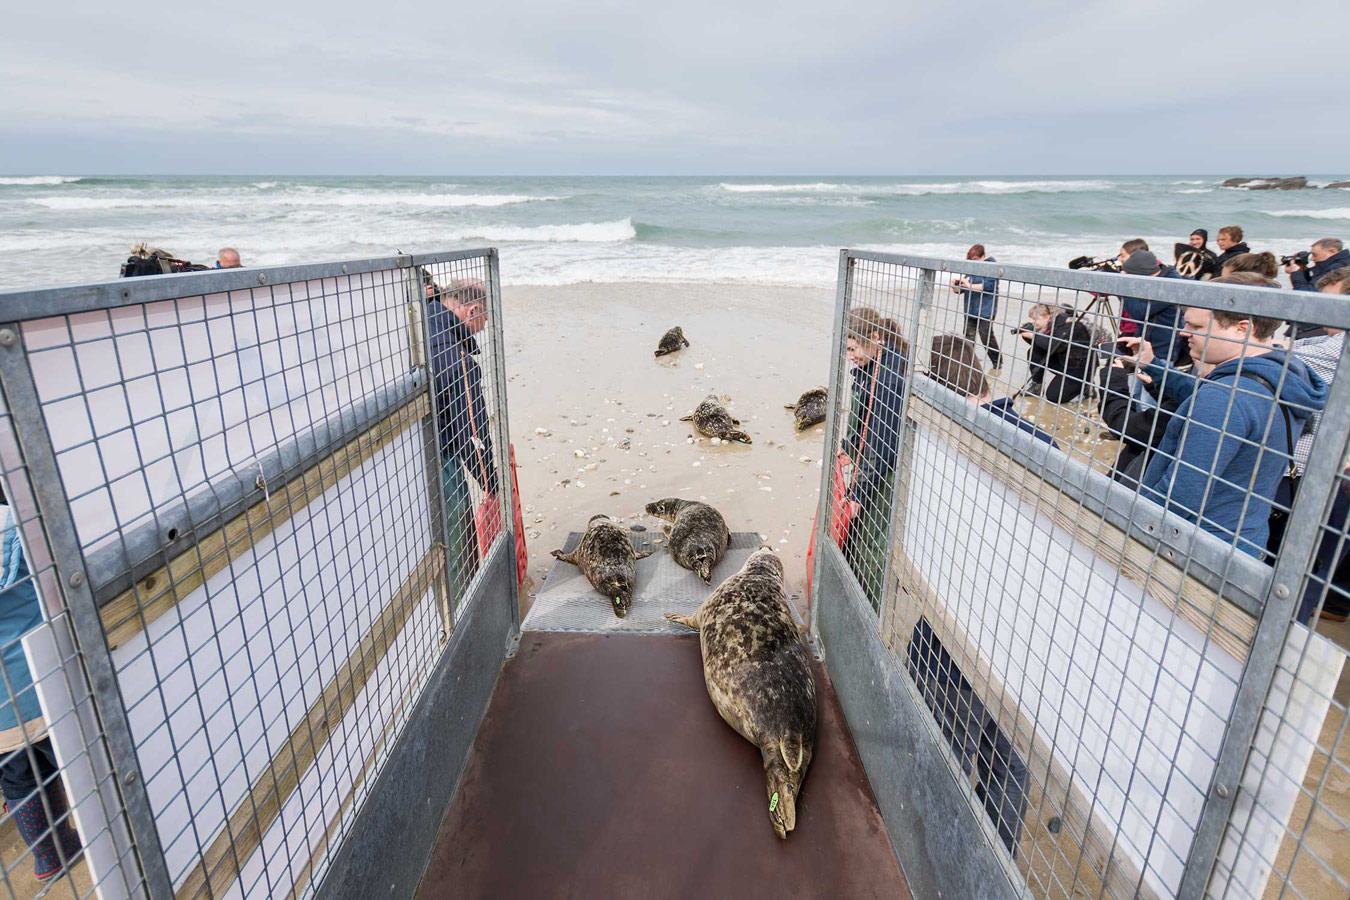 Rehabilitated grey seals being released back into the wild. Cornwall, United Kingdom, © Ben Watkins, British Wildlife Photography Awards